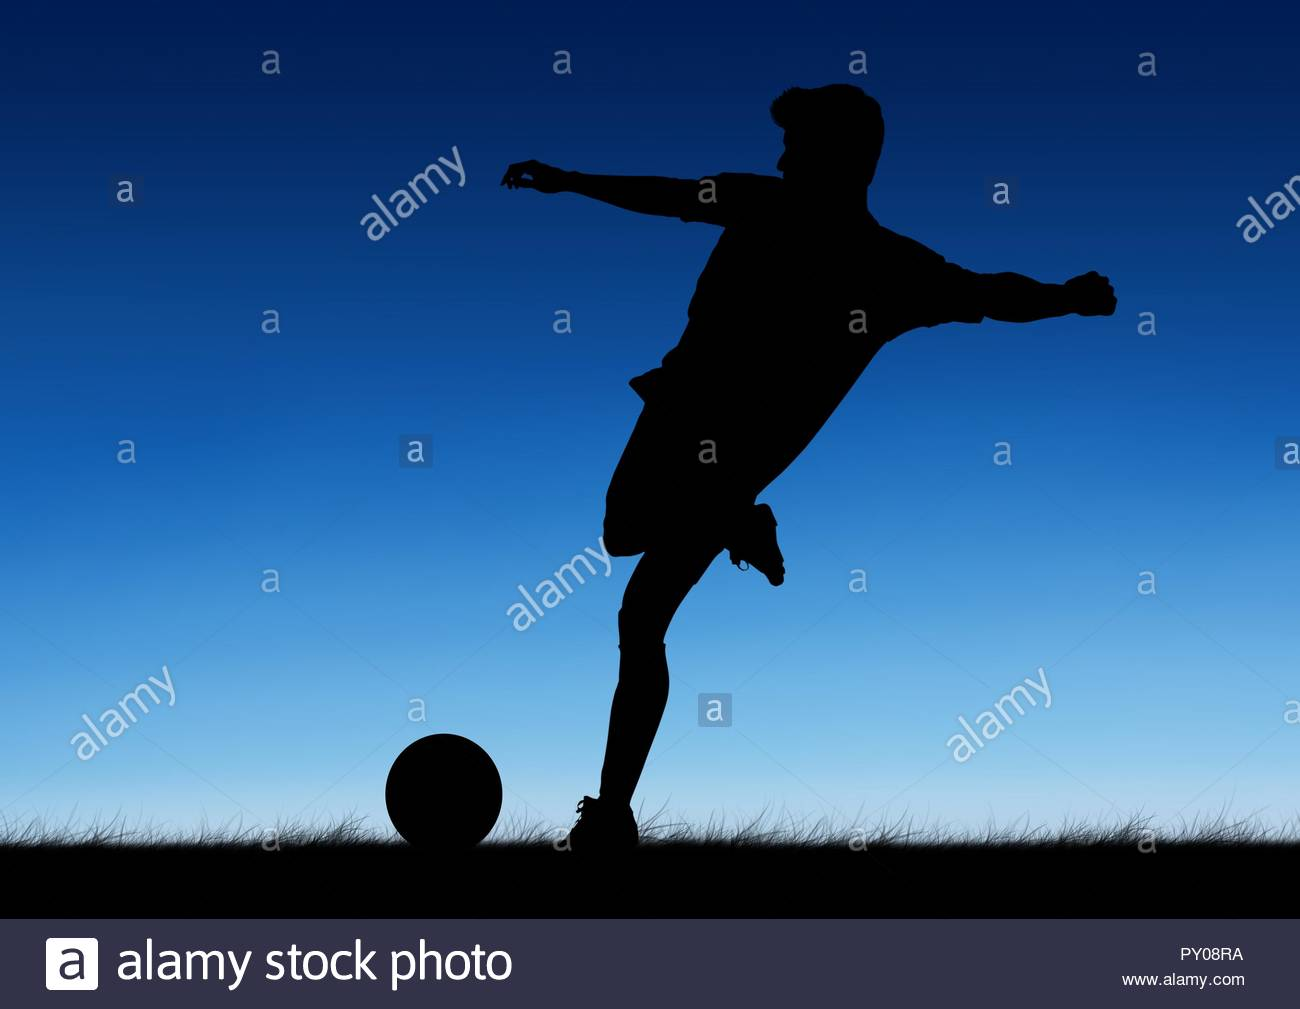 Silhouette of soccer player kicking a ball against blue background 1300x1009